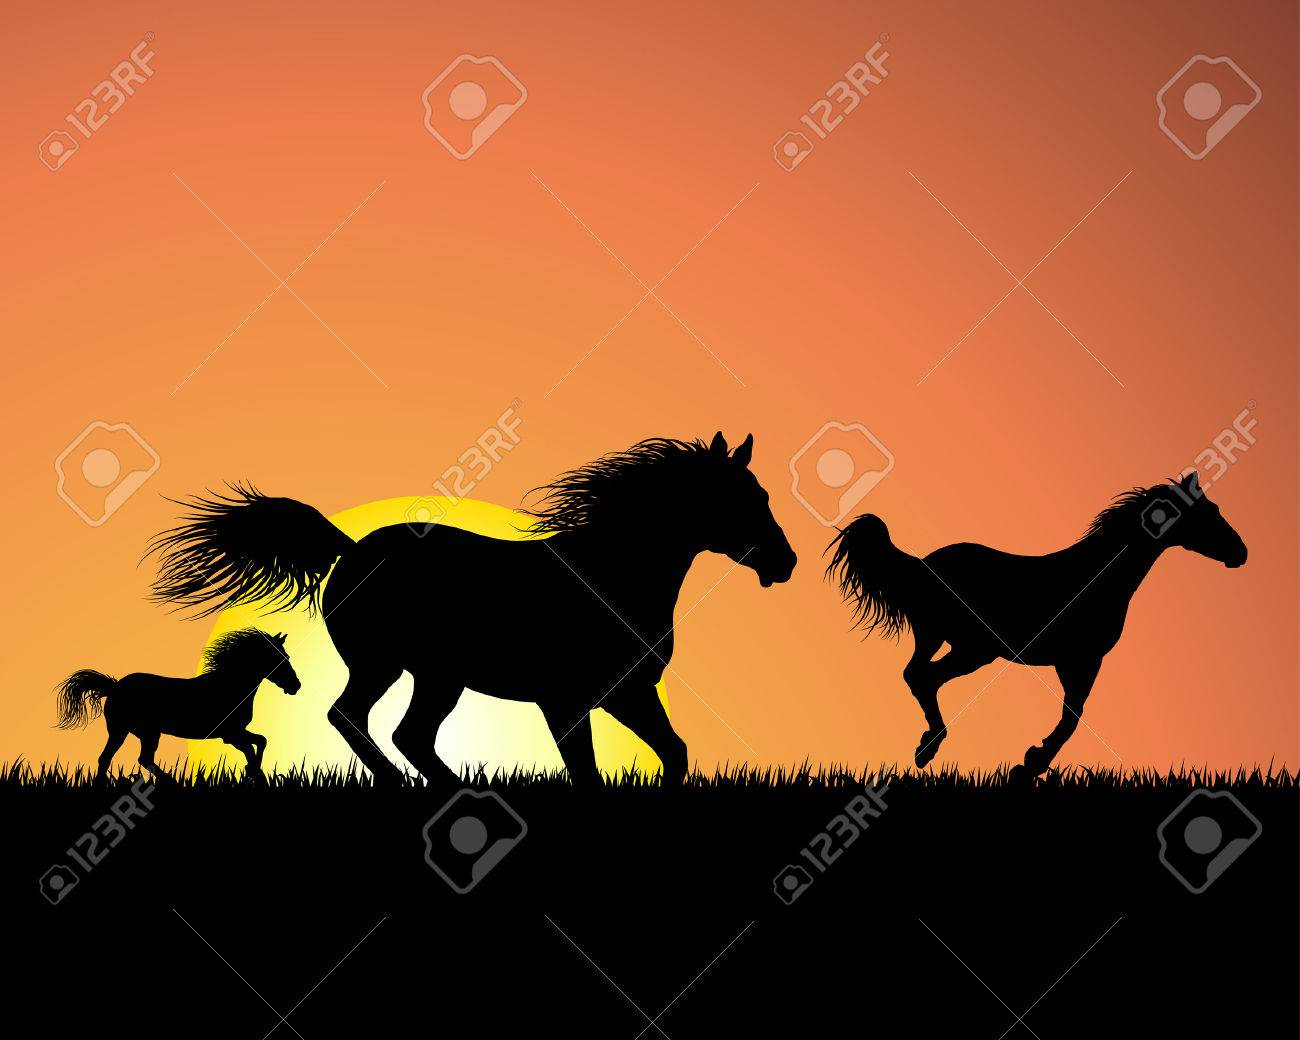 Horse Silhouette Horse Silhouette on Sunset